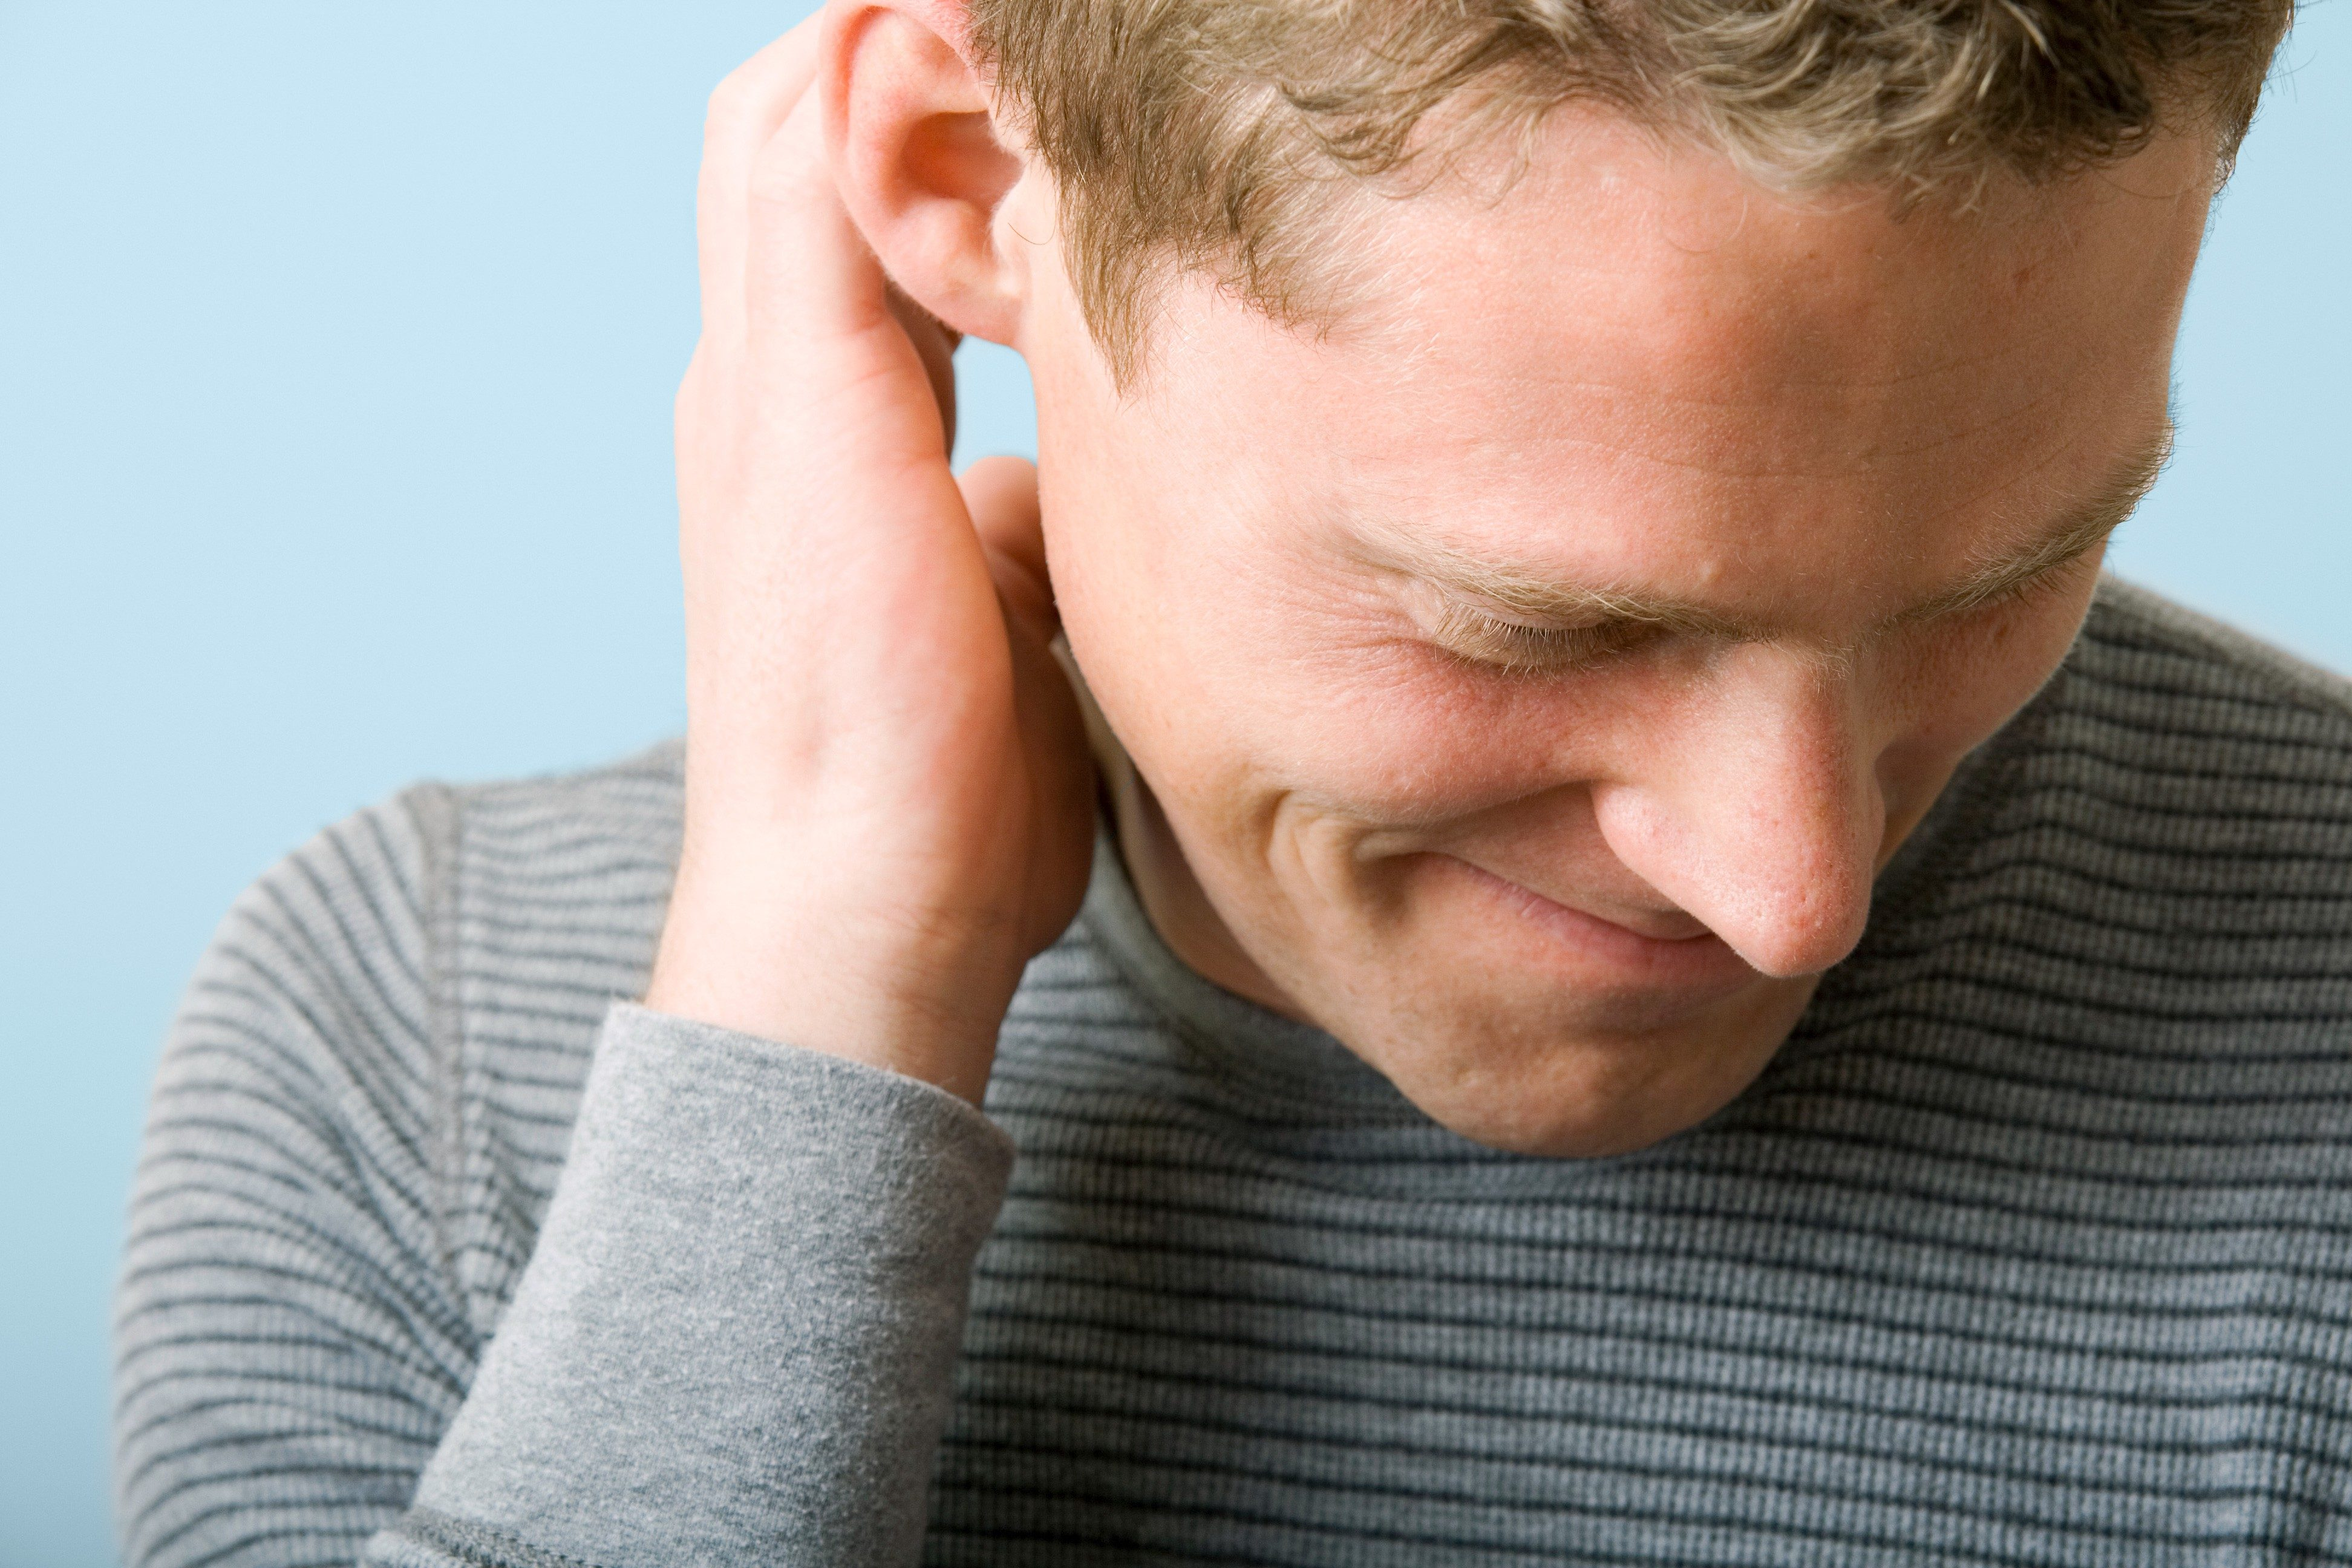 portrait of a man scratching his ear looking down. blue-gray background